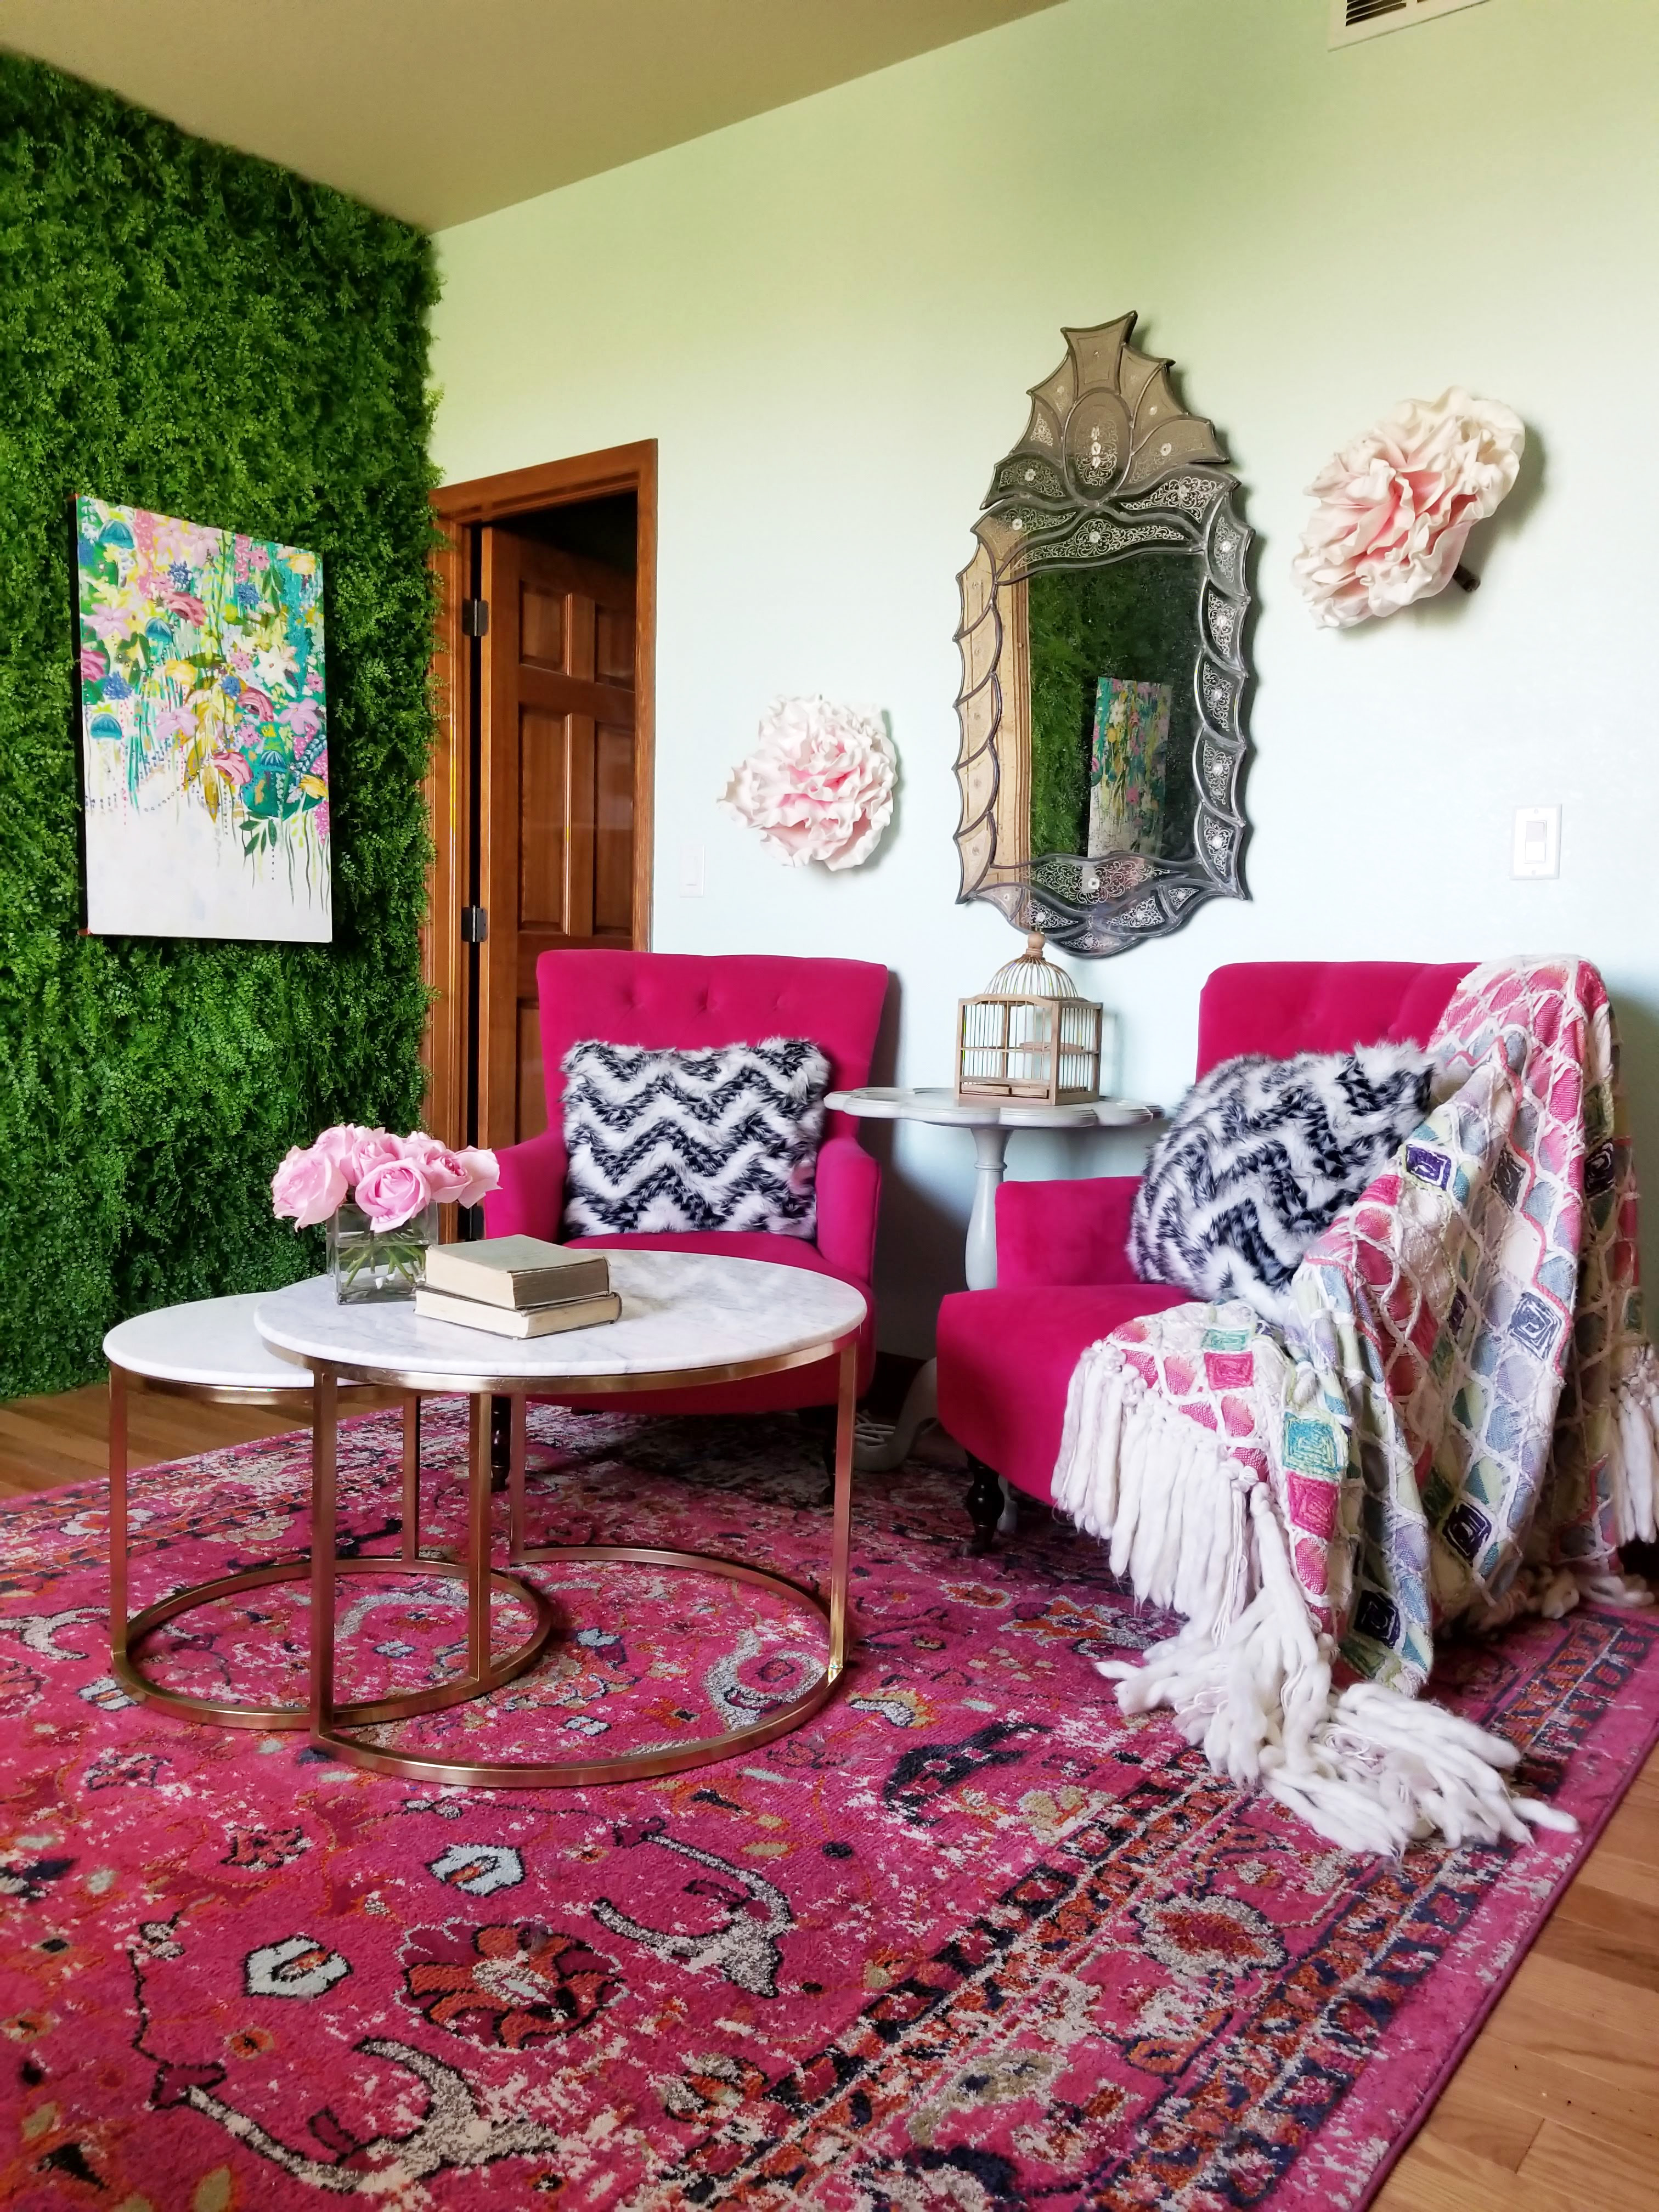 Colorado Home Tour: A Patterned Colorful Big House ... on pink la, pink kingdom, pink bh, pink flower of life, pink ba, pink sp, pink st, pink hp, pink do, pink brother, pink be, pink blue sky,